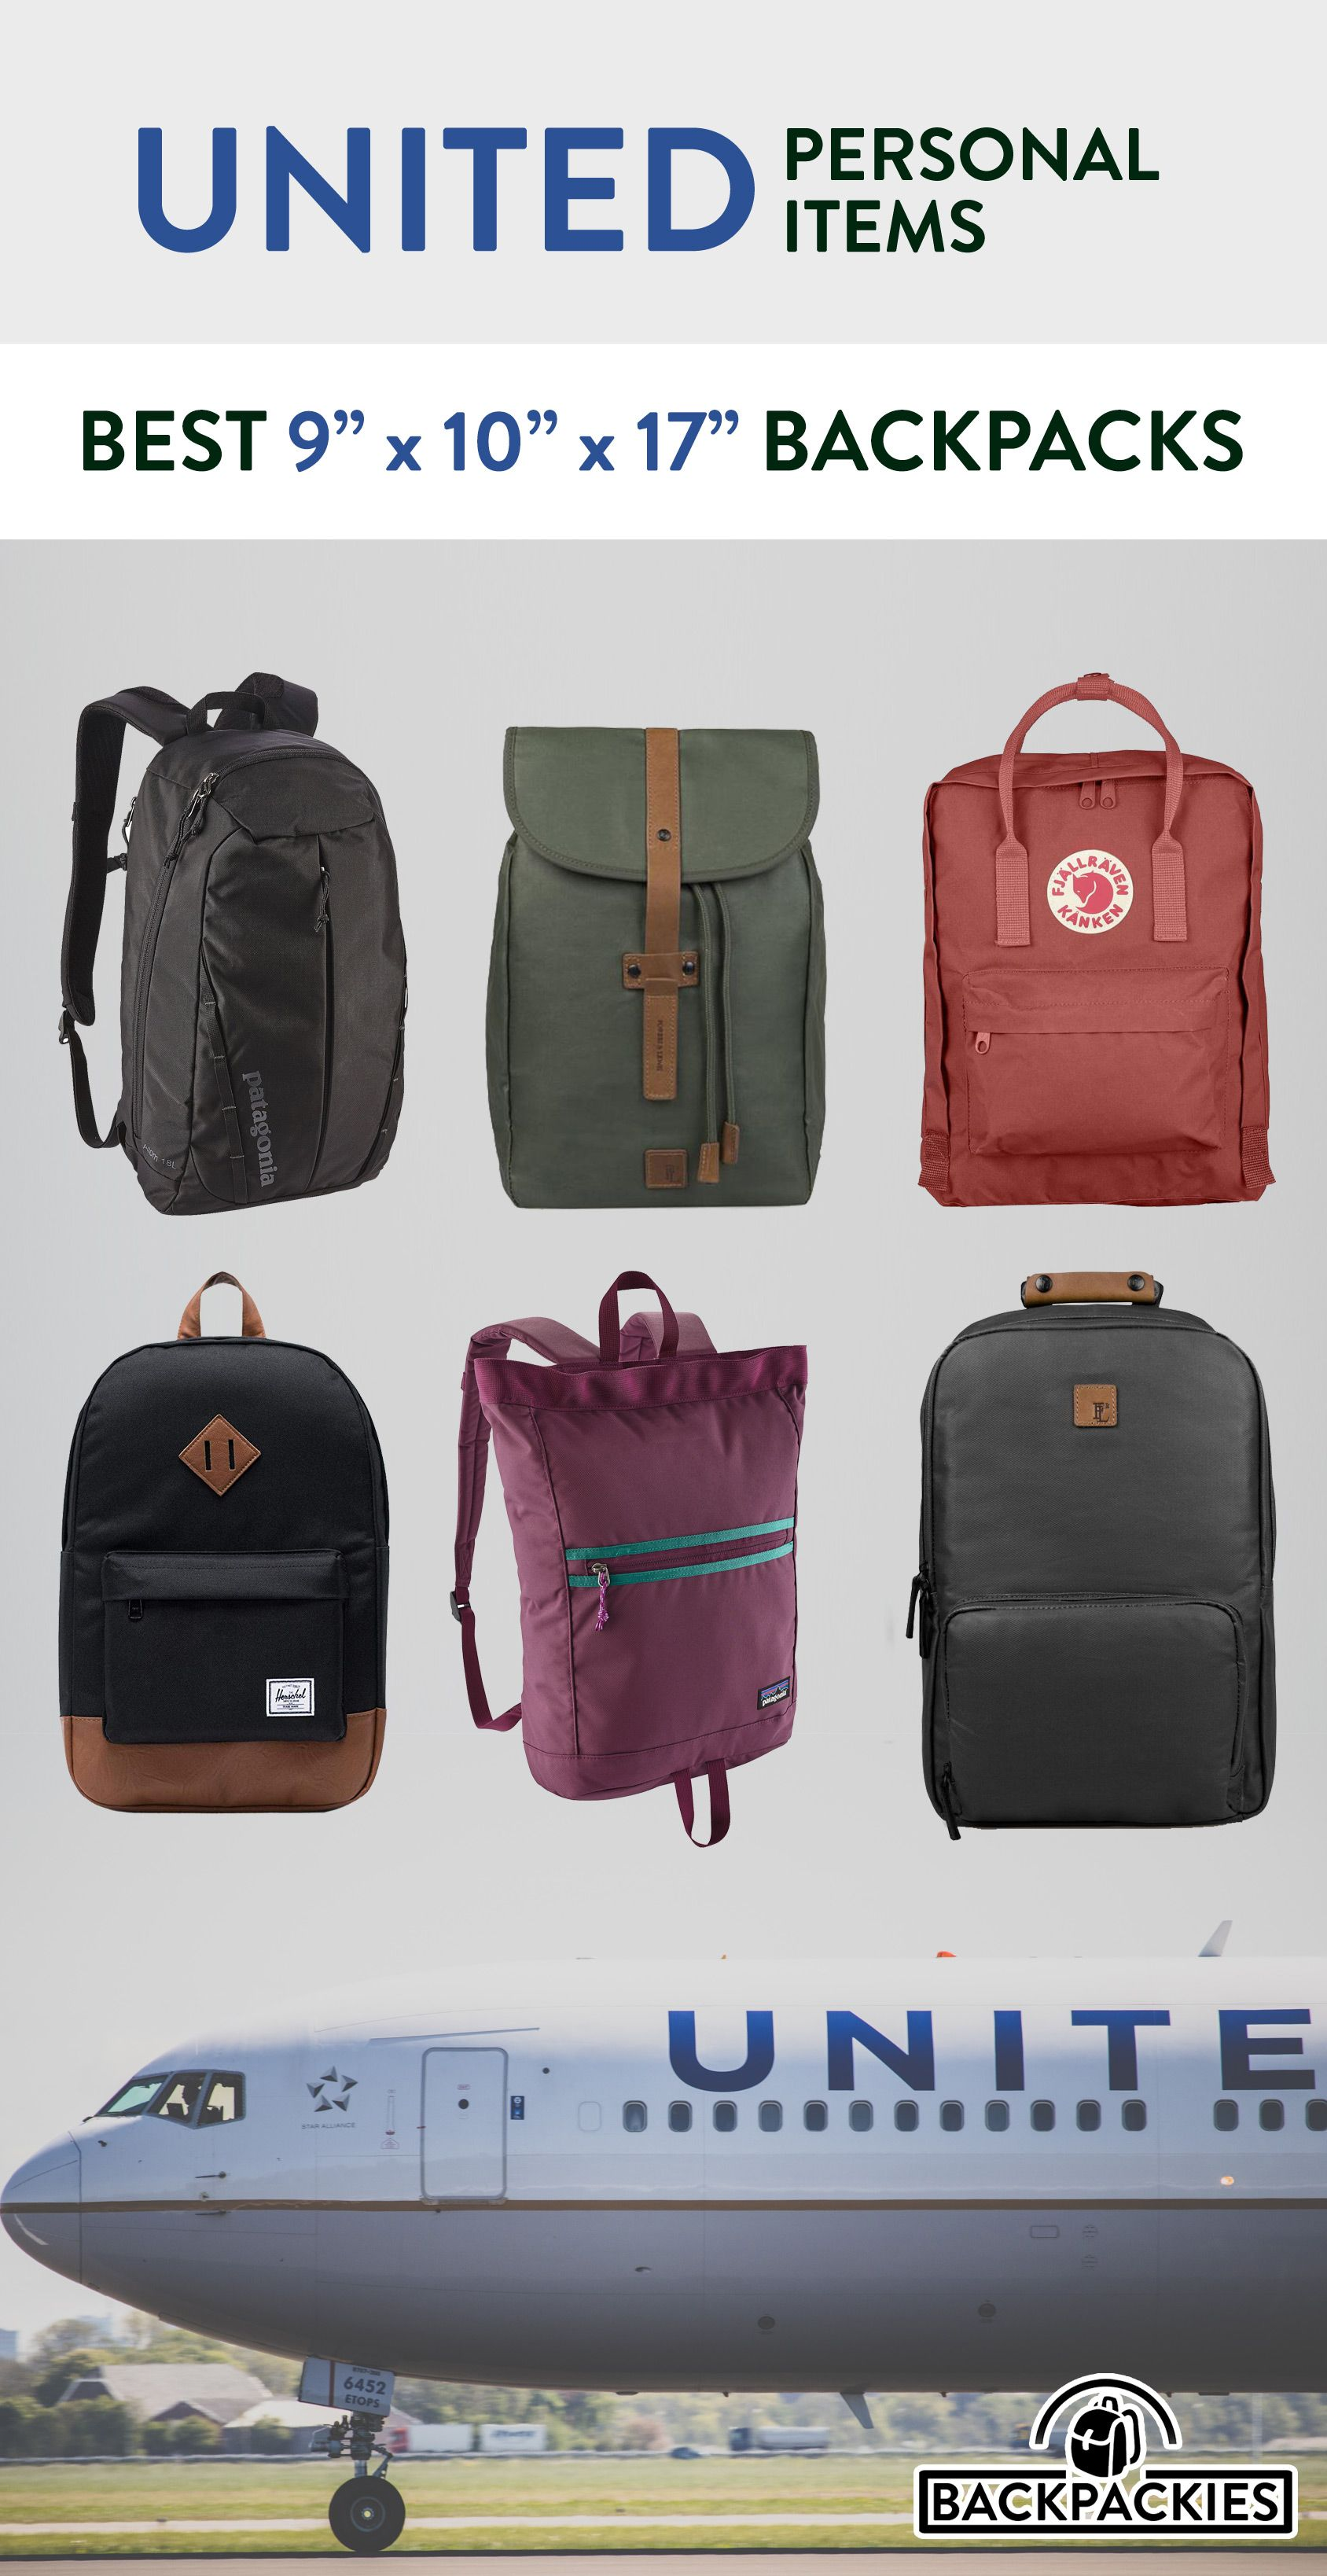 Finding The Perfect 9 X 10 X 17 Travel Bag Best United Personal Item Backpacks Backpackies Best Carry On Backpack Travel Backpack Carry On Personalized Items